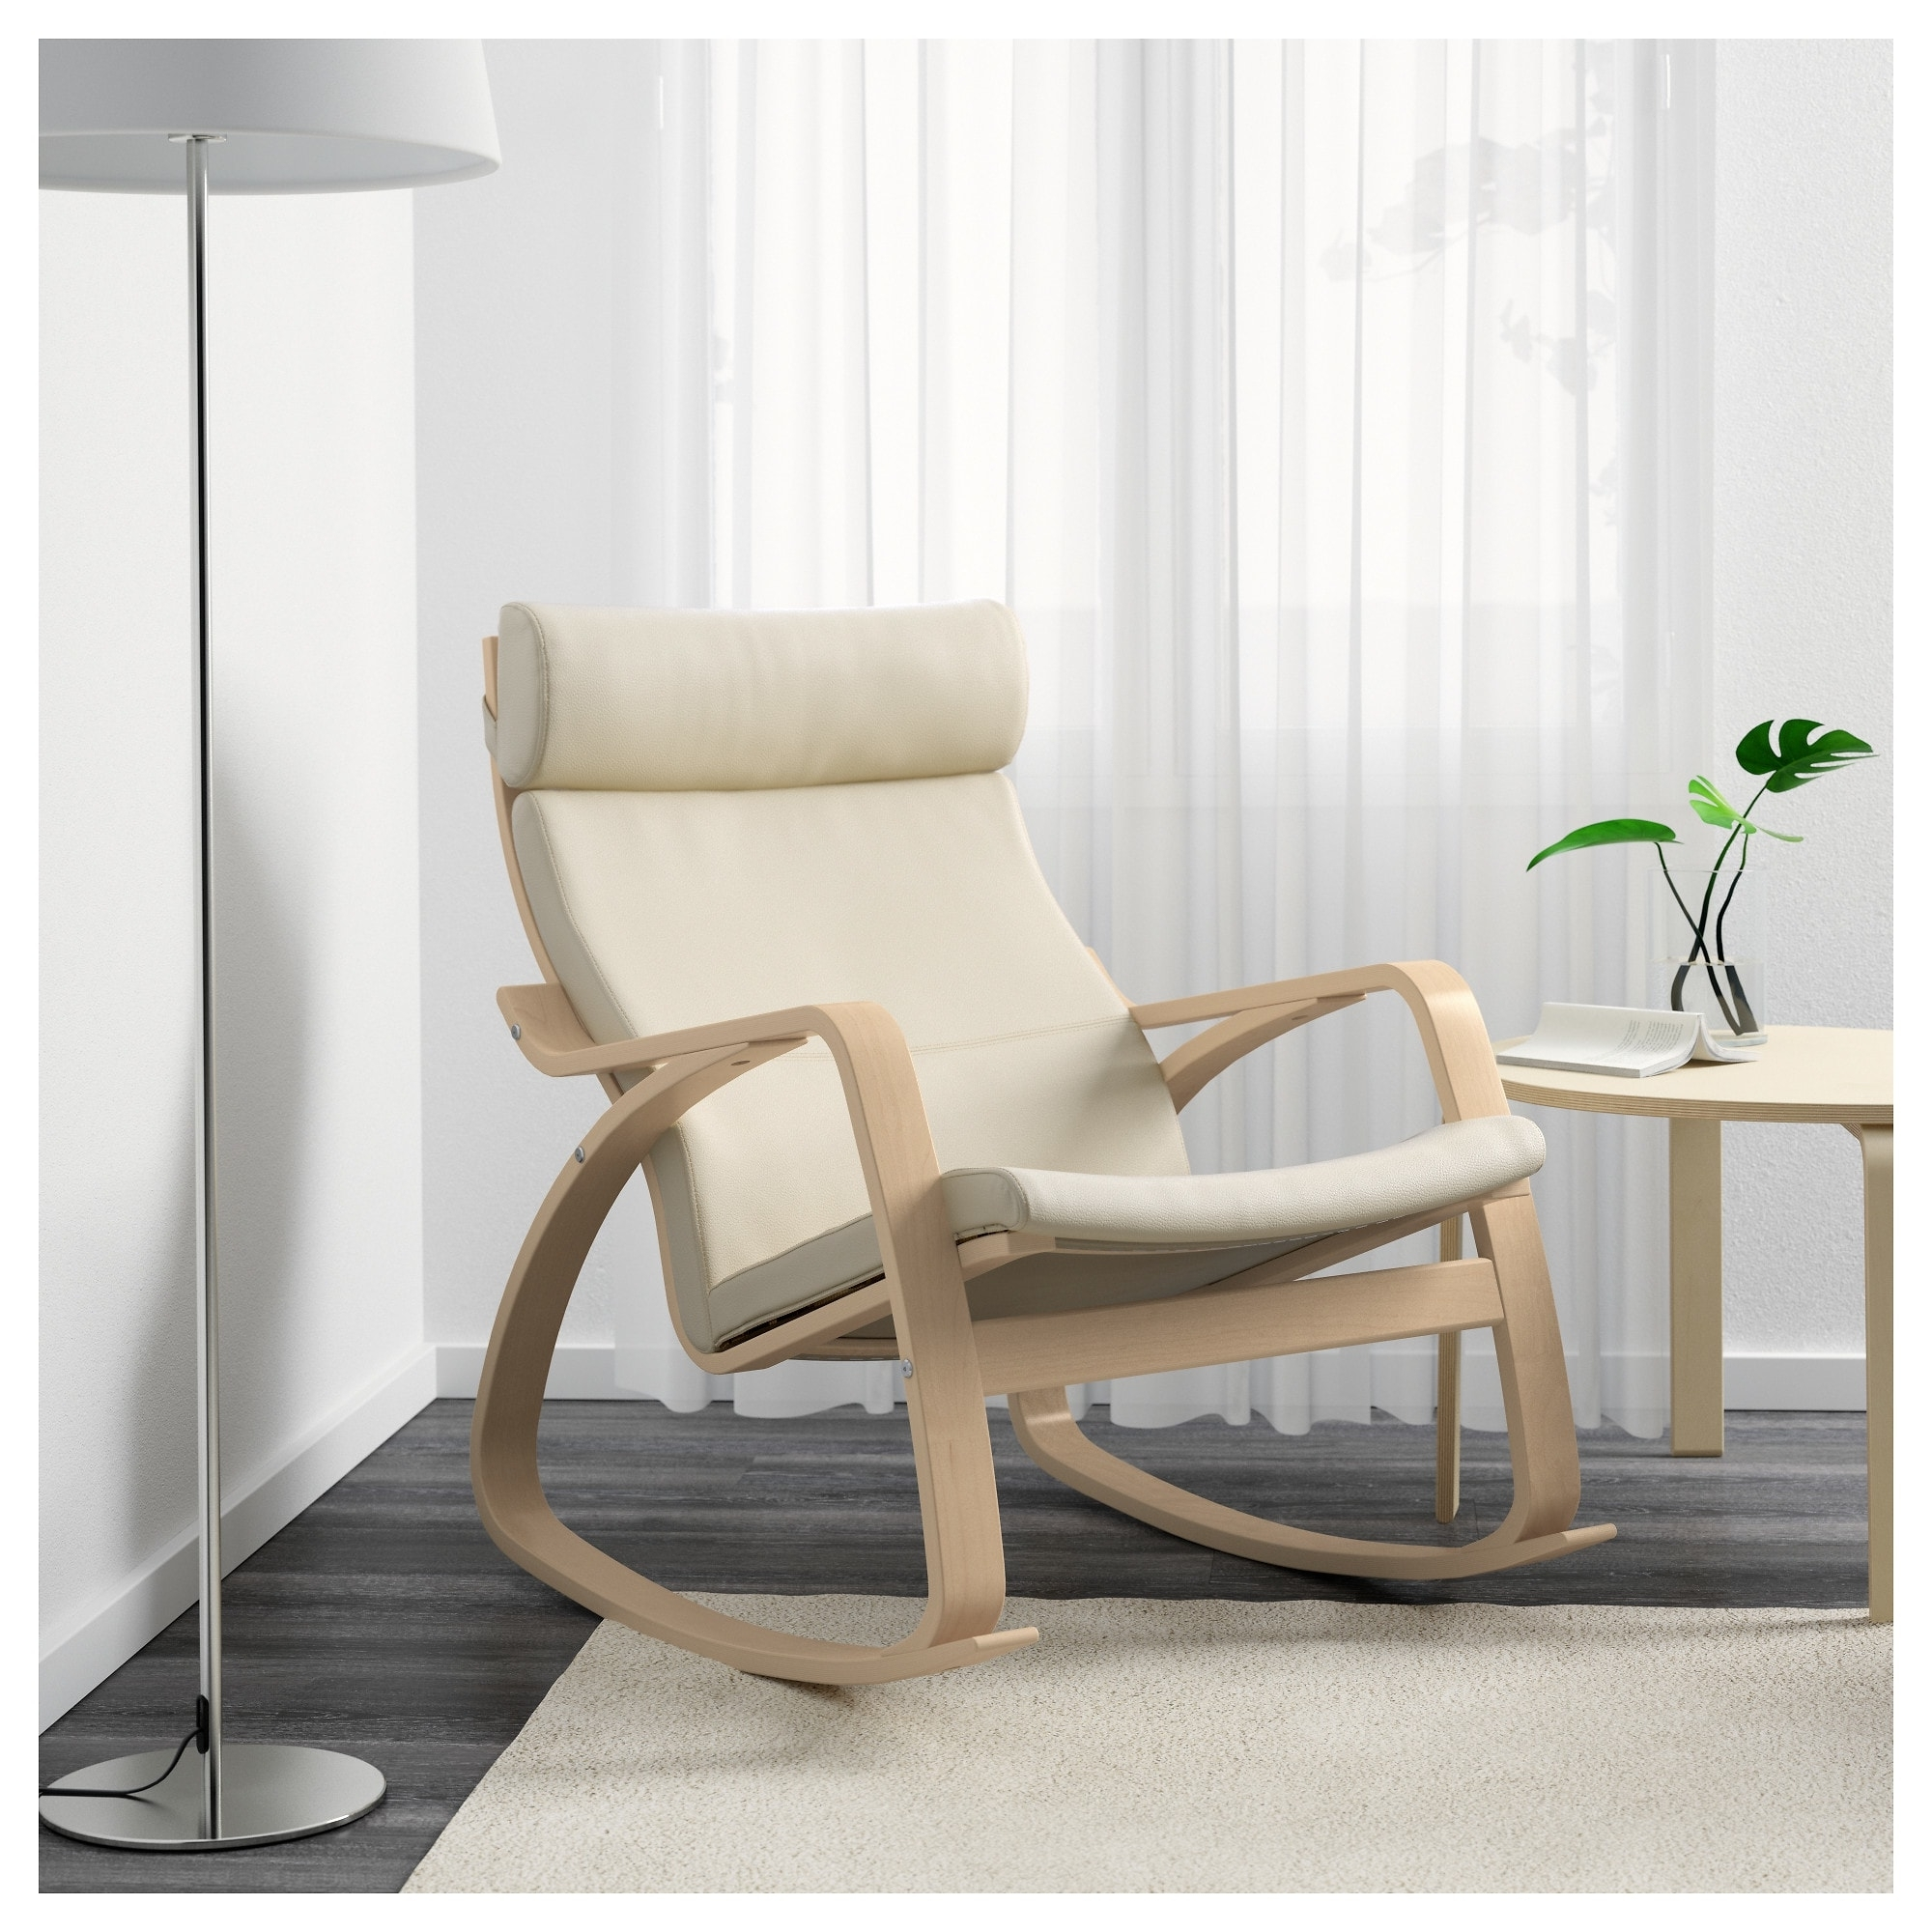 Most Recently Released Poäng Rocking Chair Birch Veneer/glose Eggshell – Ikea Intended For Rocking Chairs At Ikea (View 1 of 15)